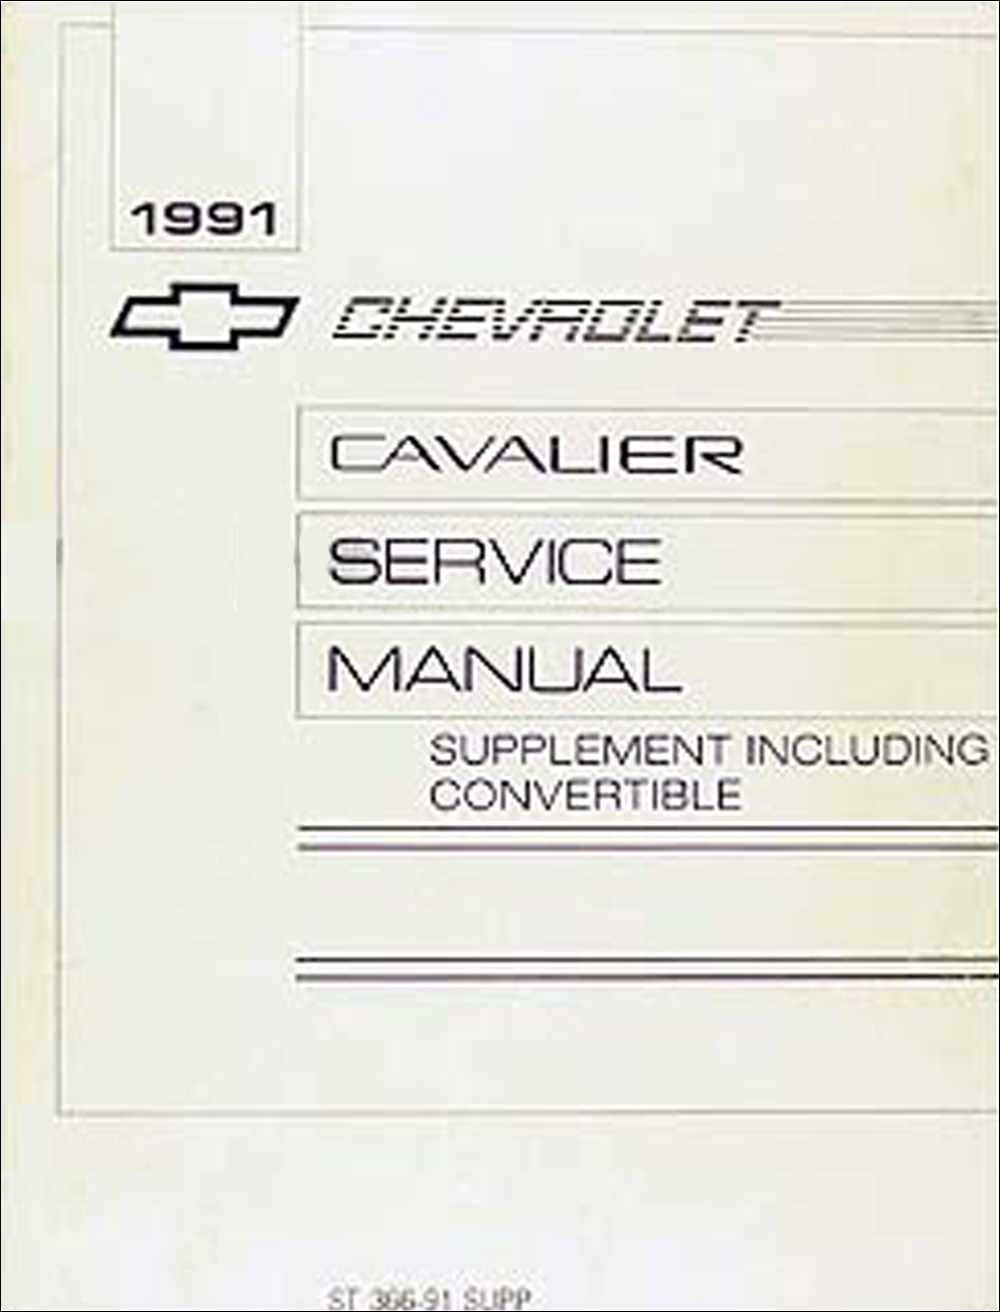 1991 Cavalier Repair Manual Supplement Original Convertible & late production